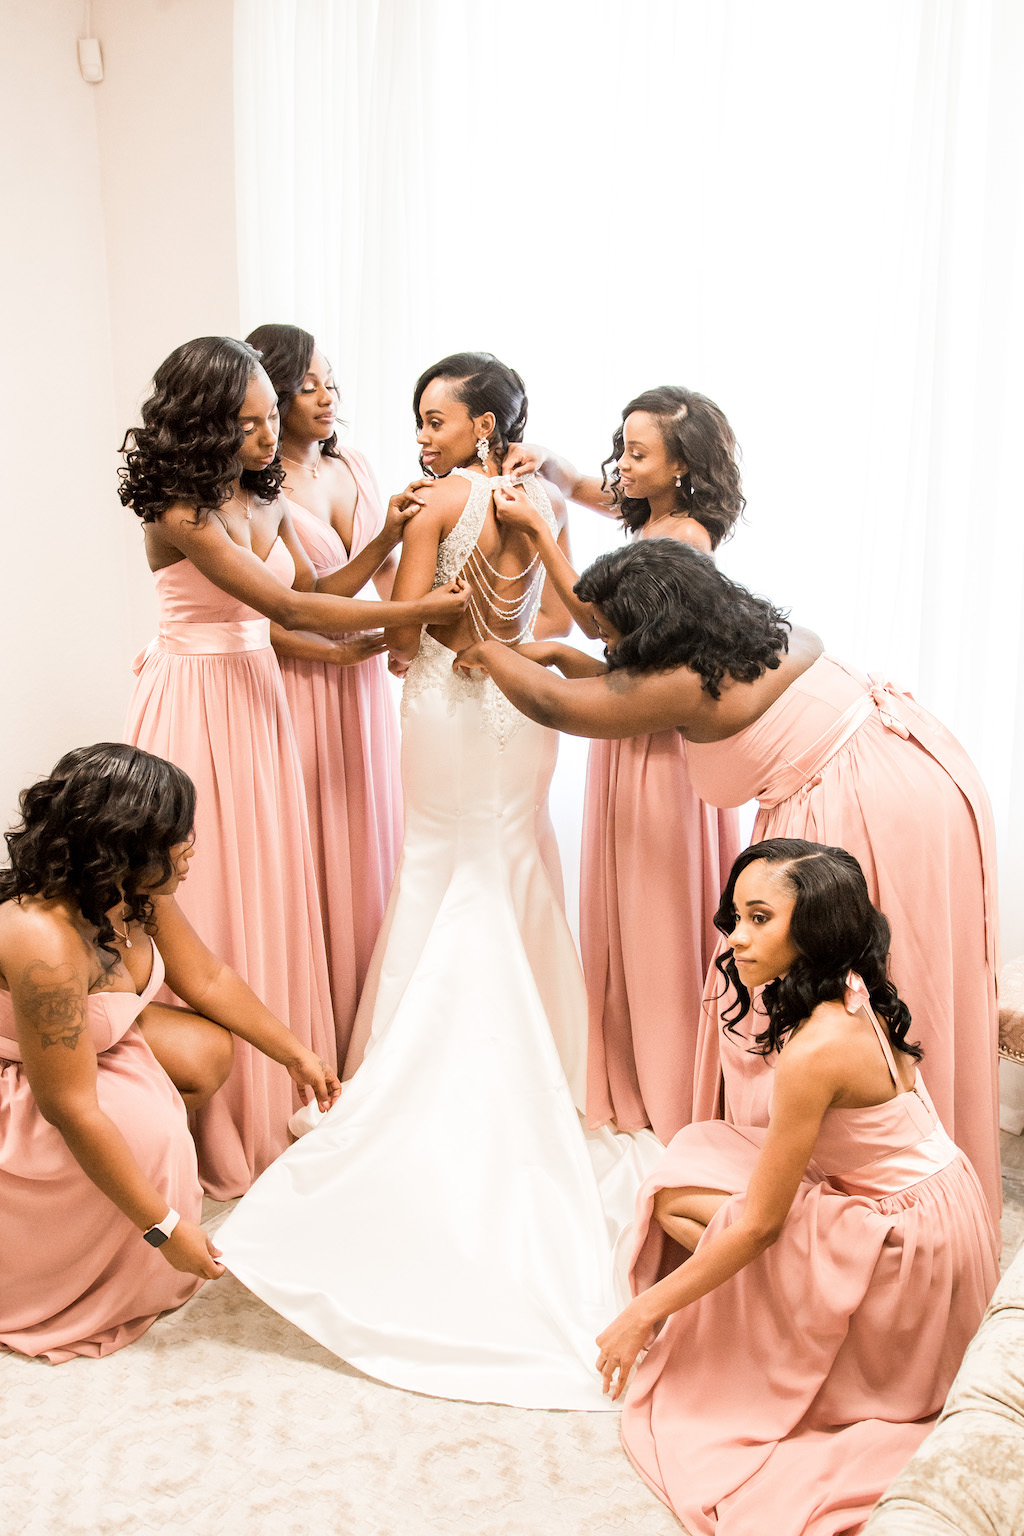 Bride and Bridesmaids Getting Ready Portrait Illusion V-neck Rhinestone Beaded Bodice and Tank Top Strap Wedding Dress with Keyhole Back, Bridesmaids in Blush Pink Mix and Match Dresses   Tampa Wedding Dress Shop Truly Forever Bridal